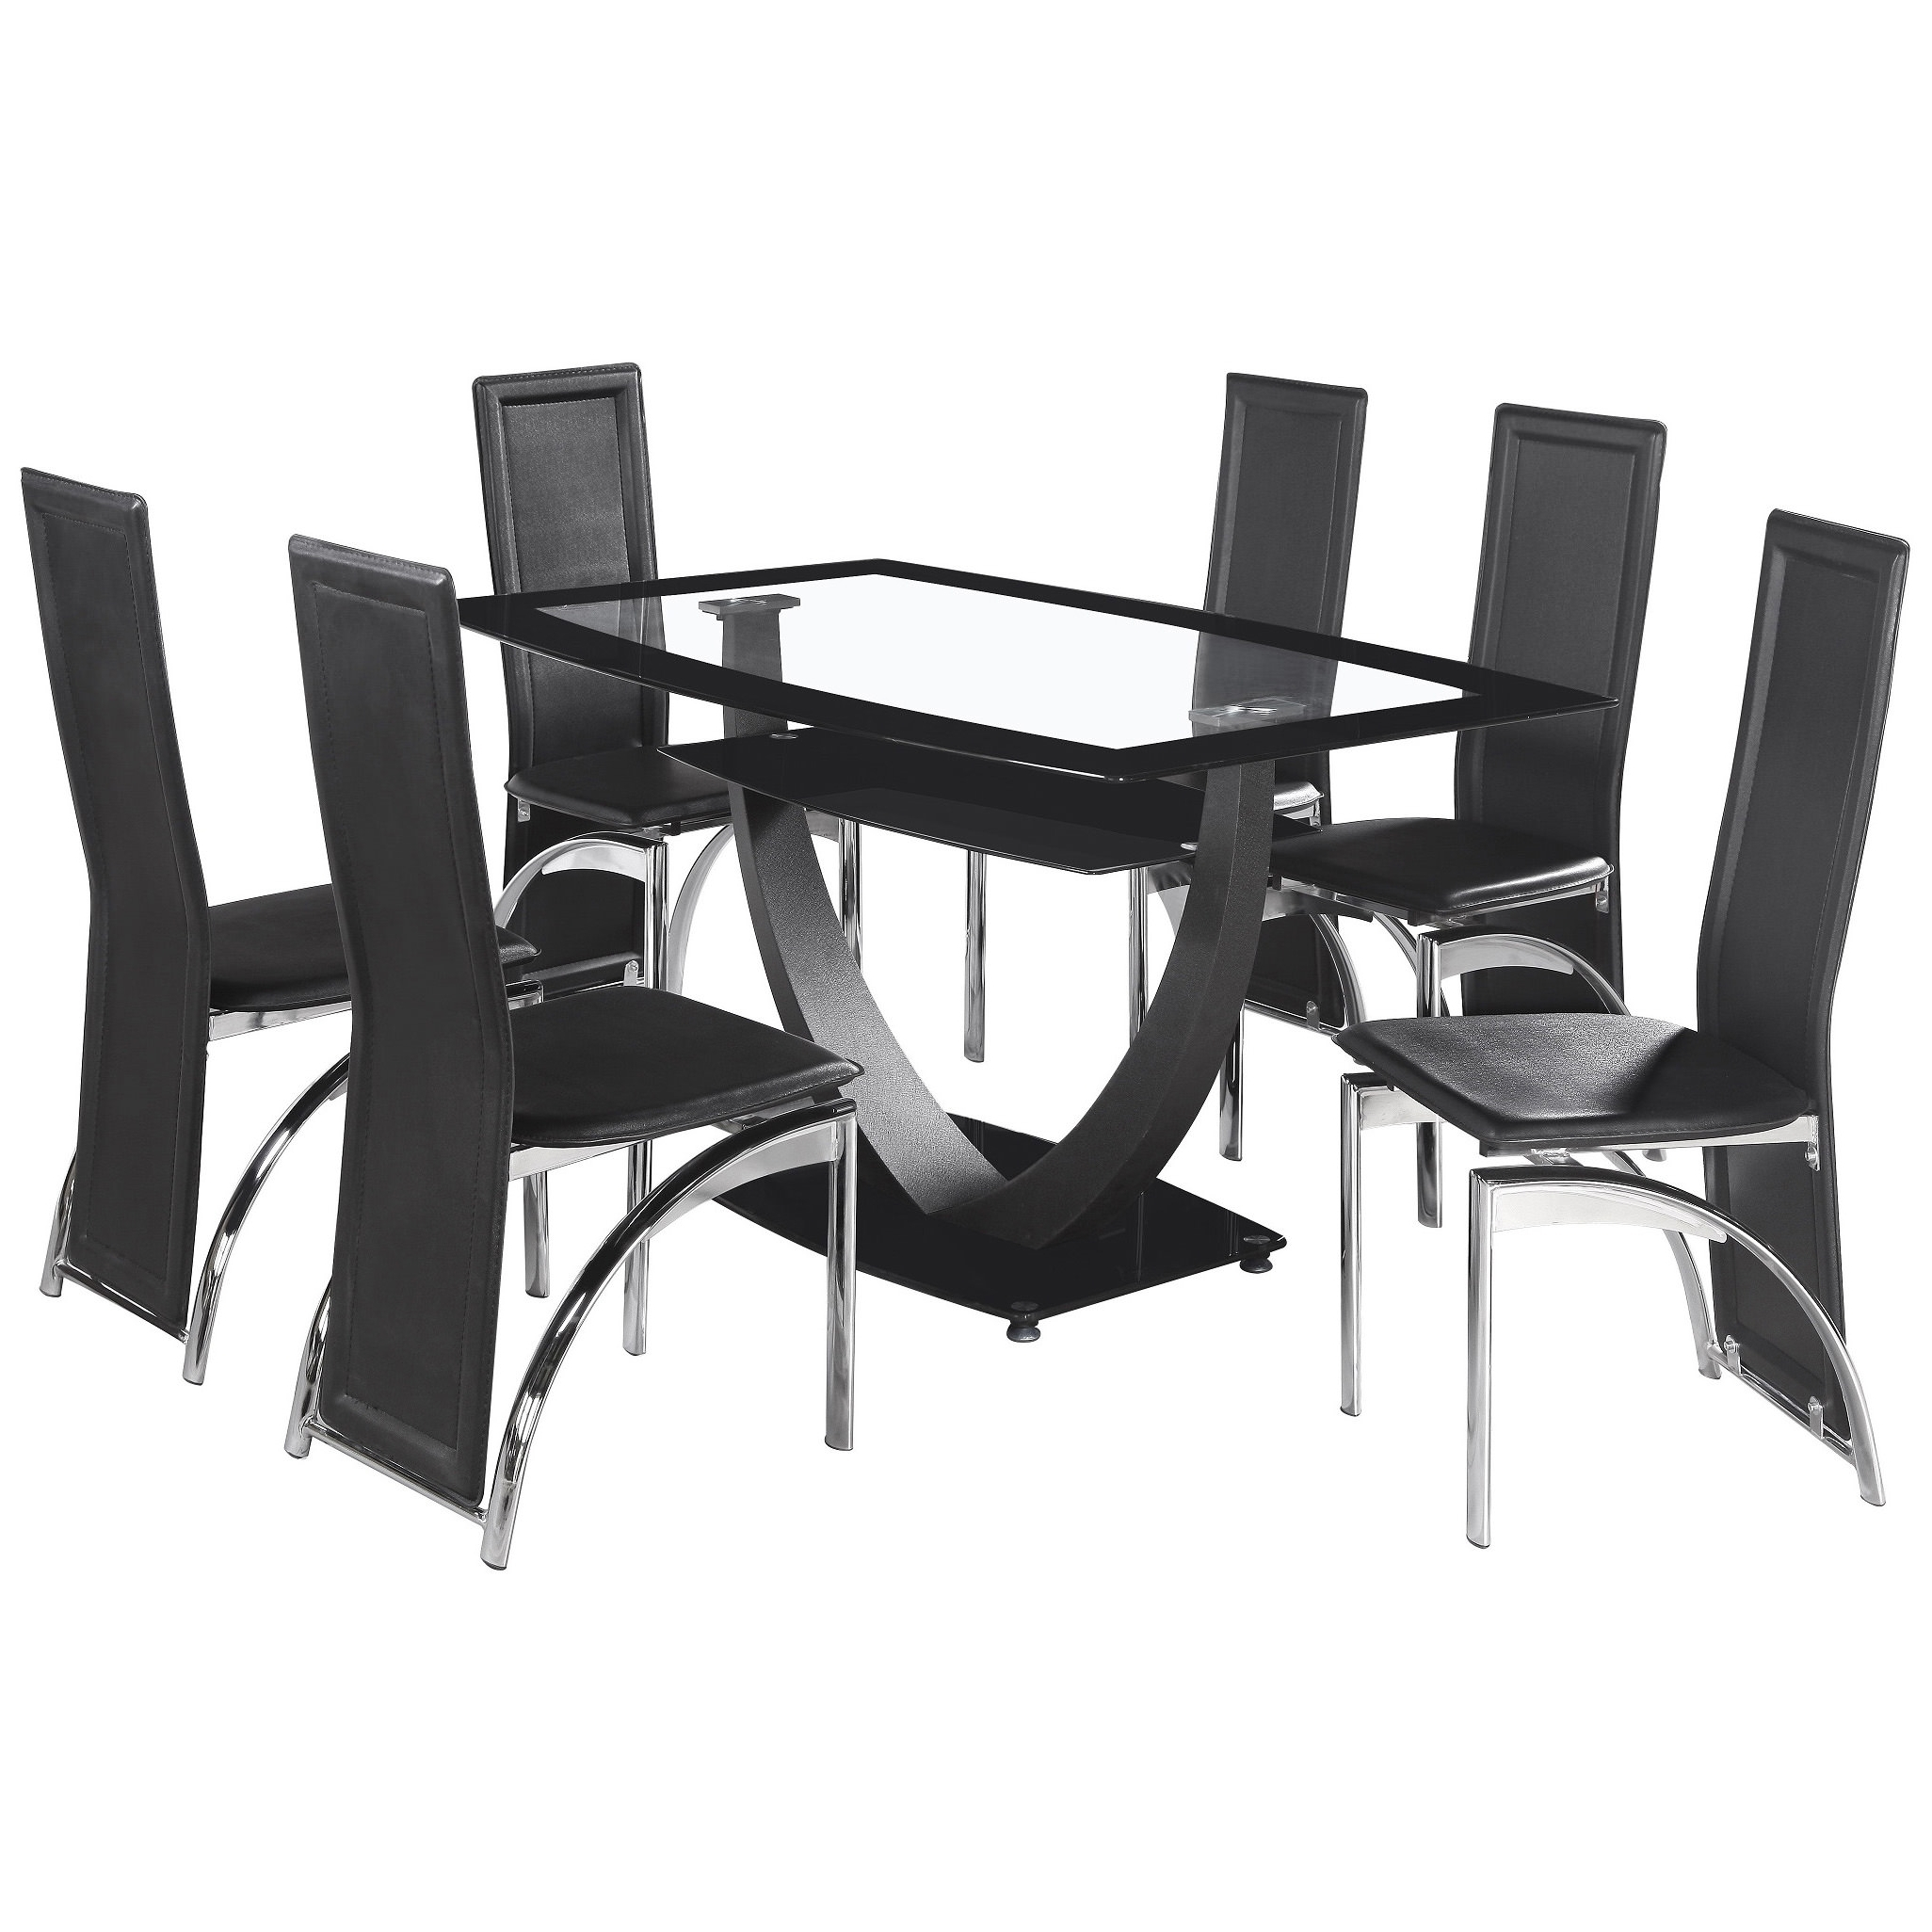 Clear Glass Dining Tables And Chairs Throughout Most Recently Released Details About Black & Clear Glass Dining Table And Chair Set With 6 Leather  Seats (View 22 of 25)